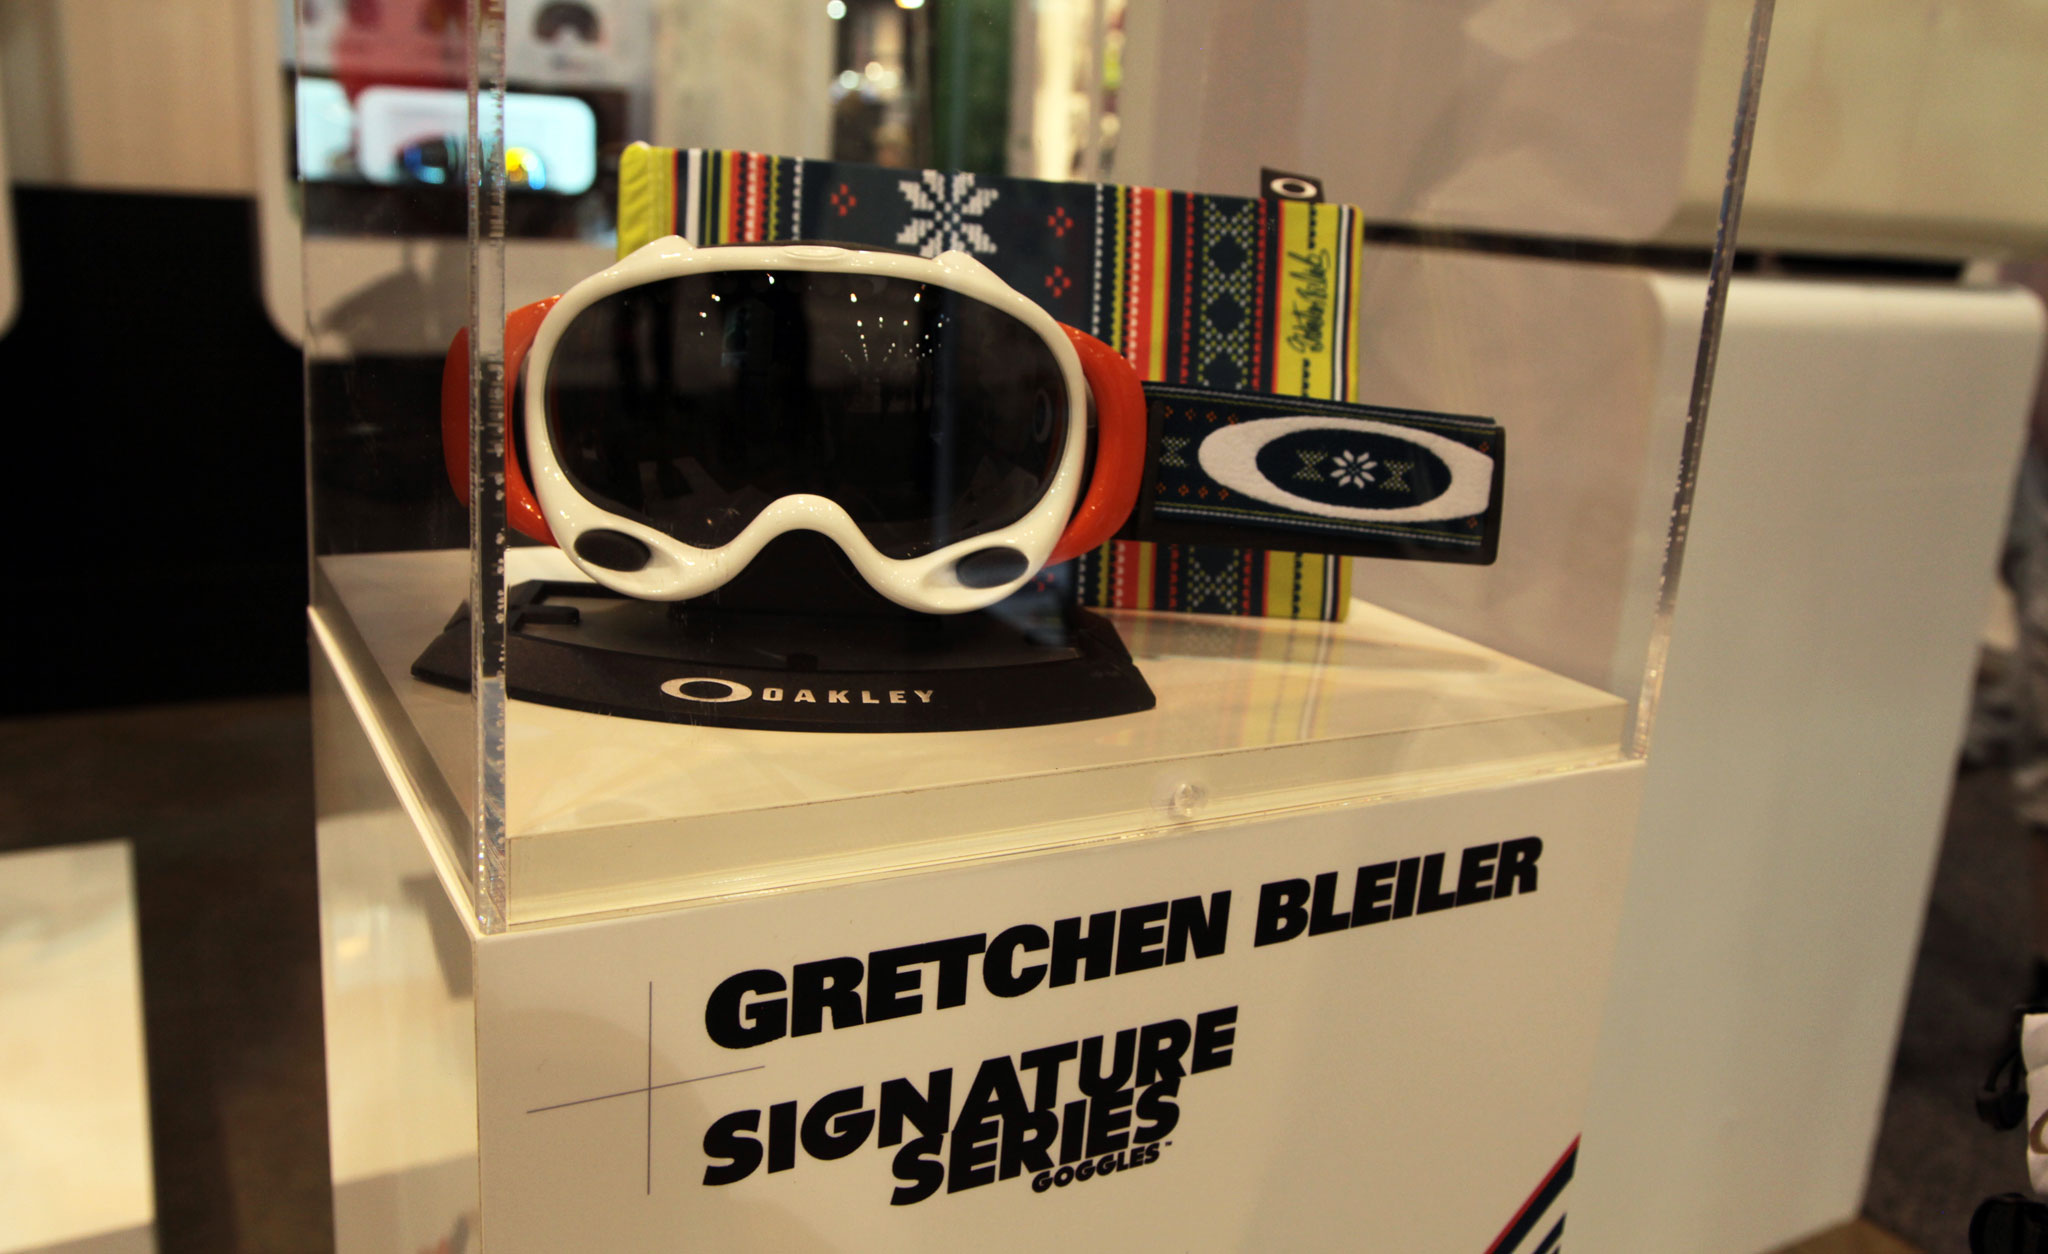 Oakley Gretchen Bleiler Signature Series